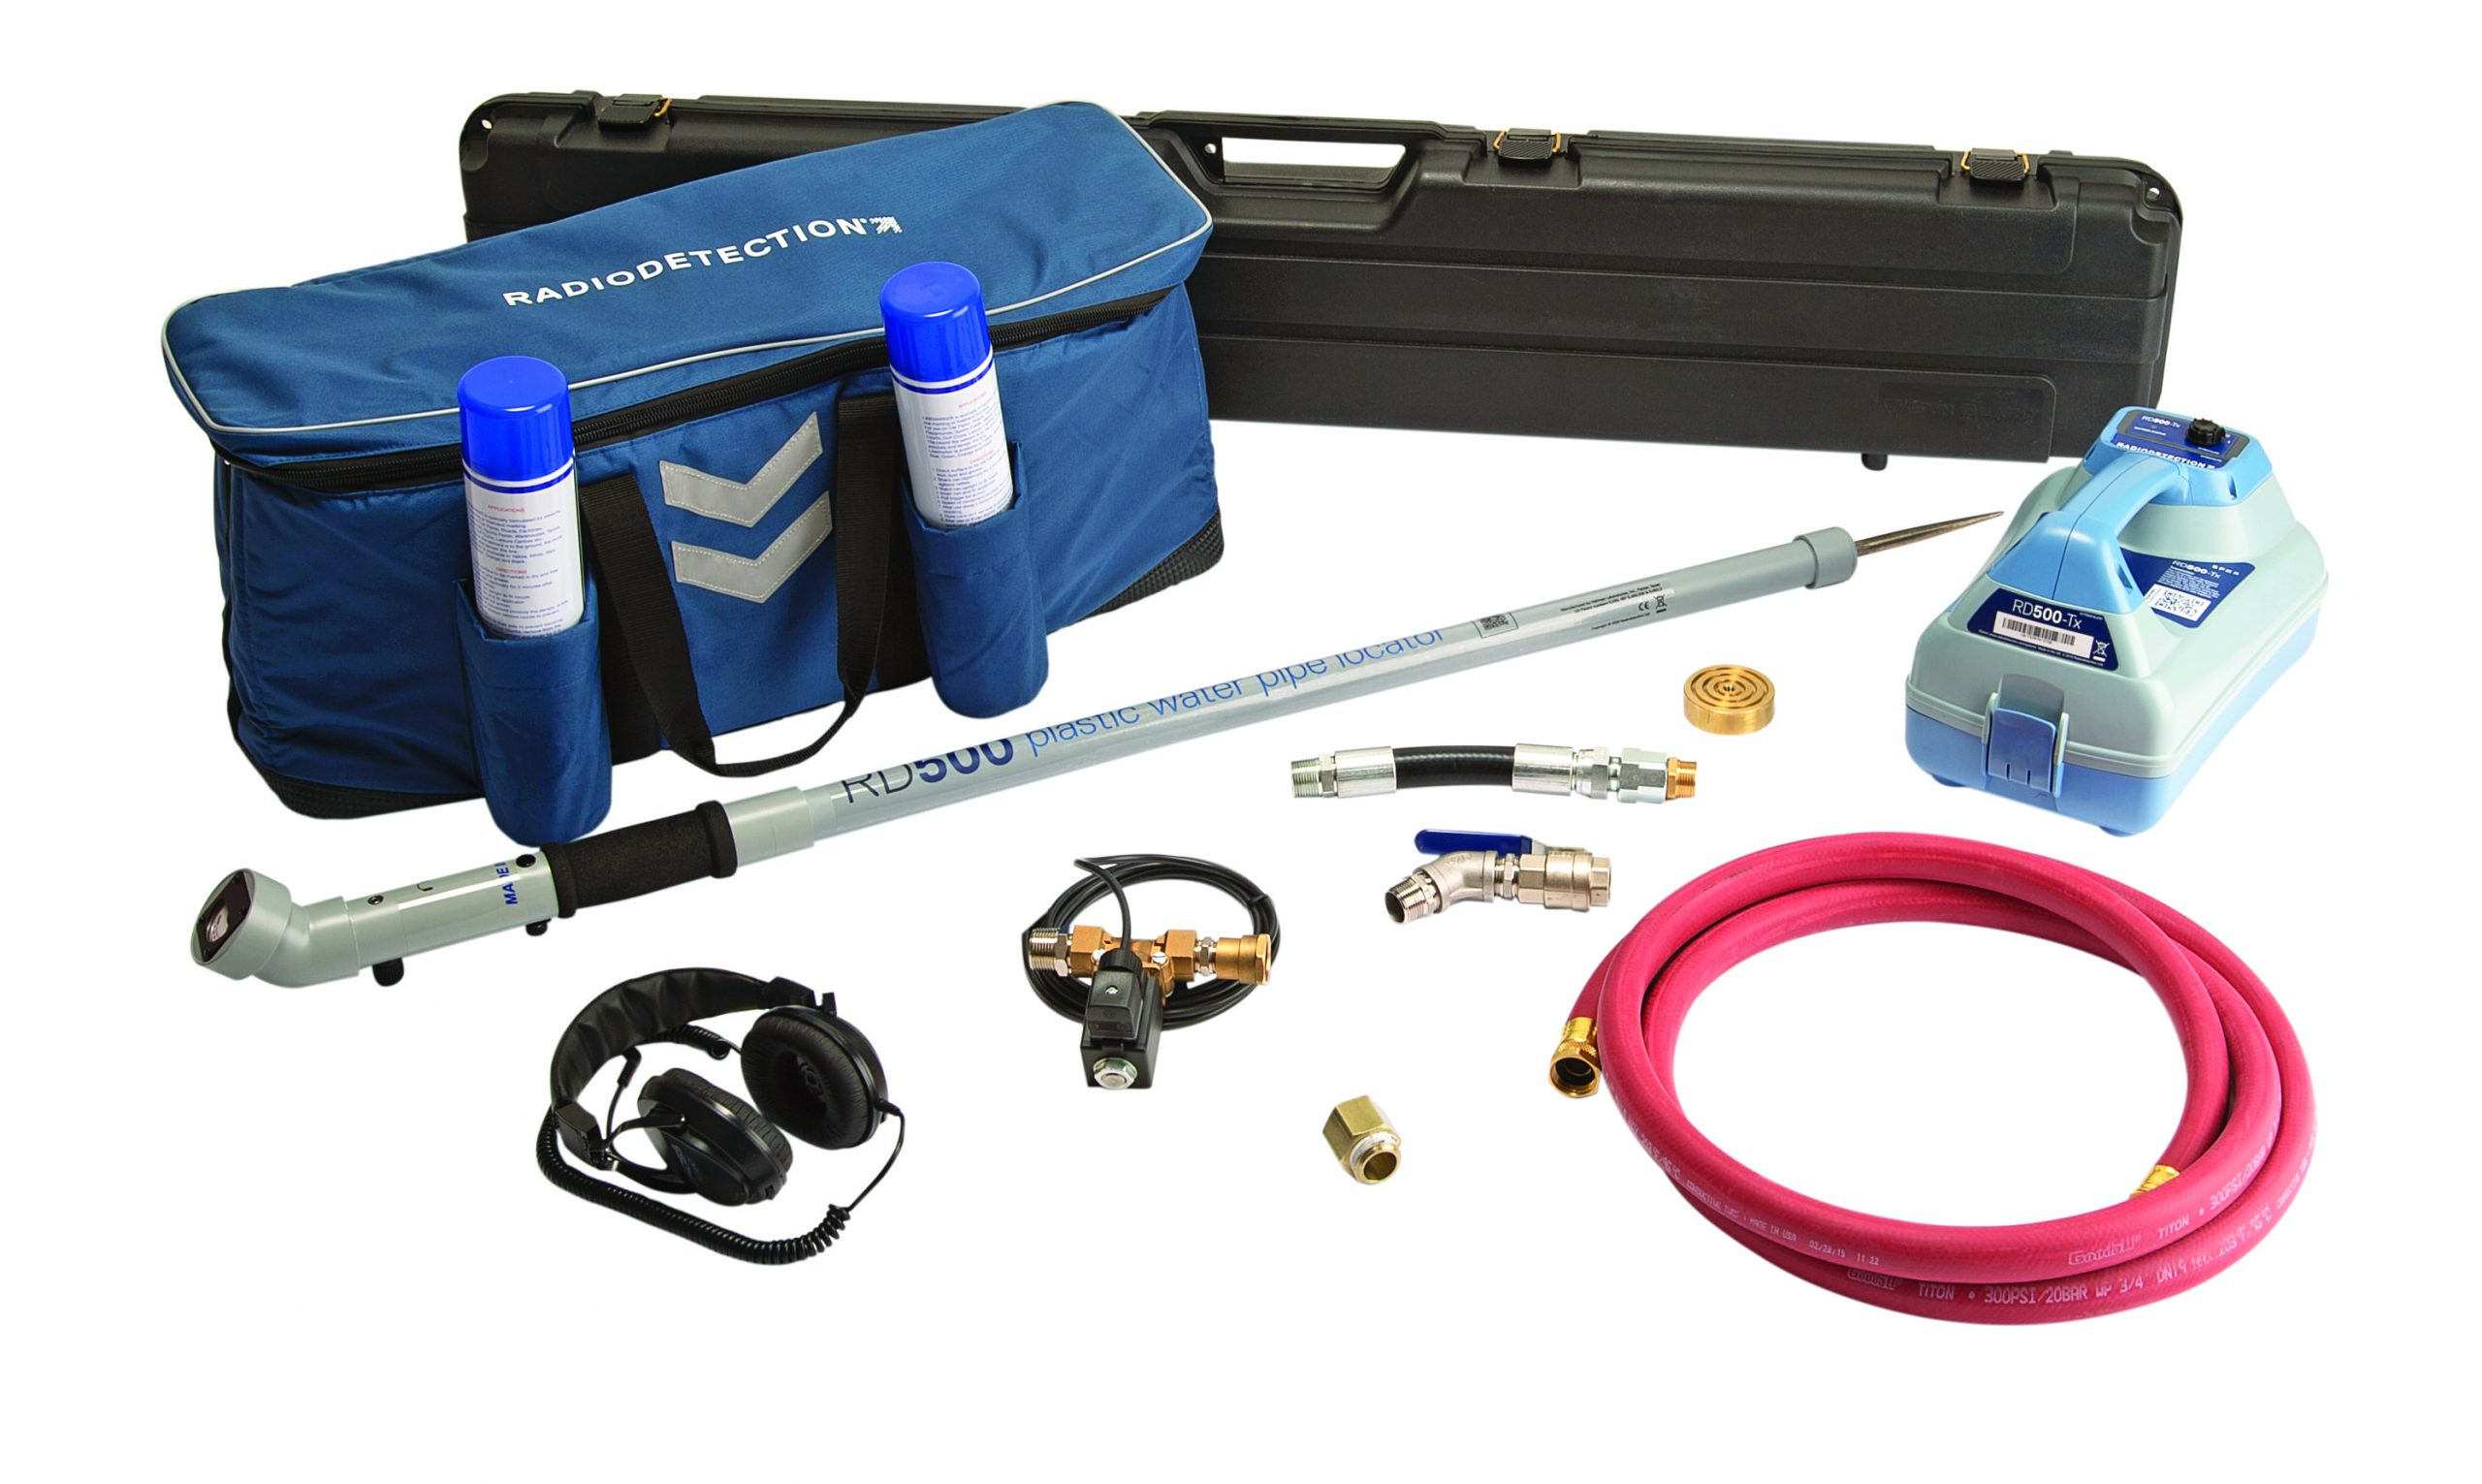 RD500 Electronic Pulse Tx Kit Product Array